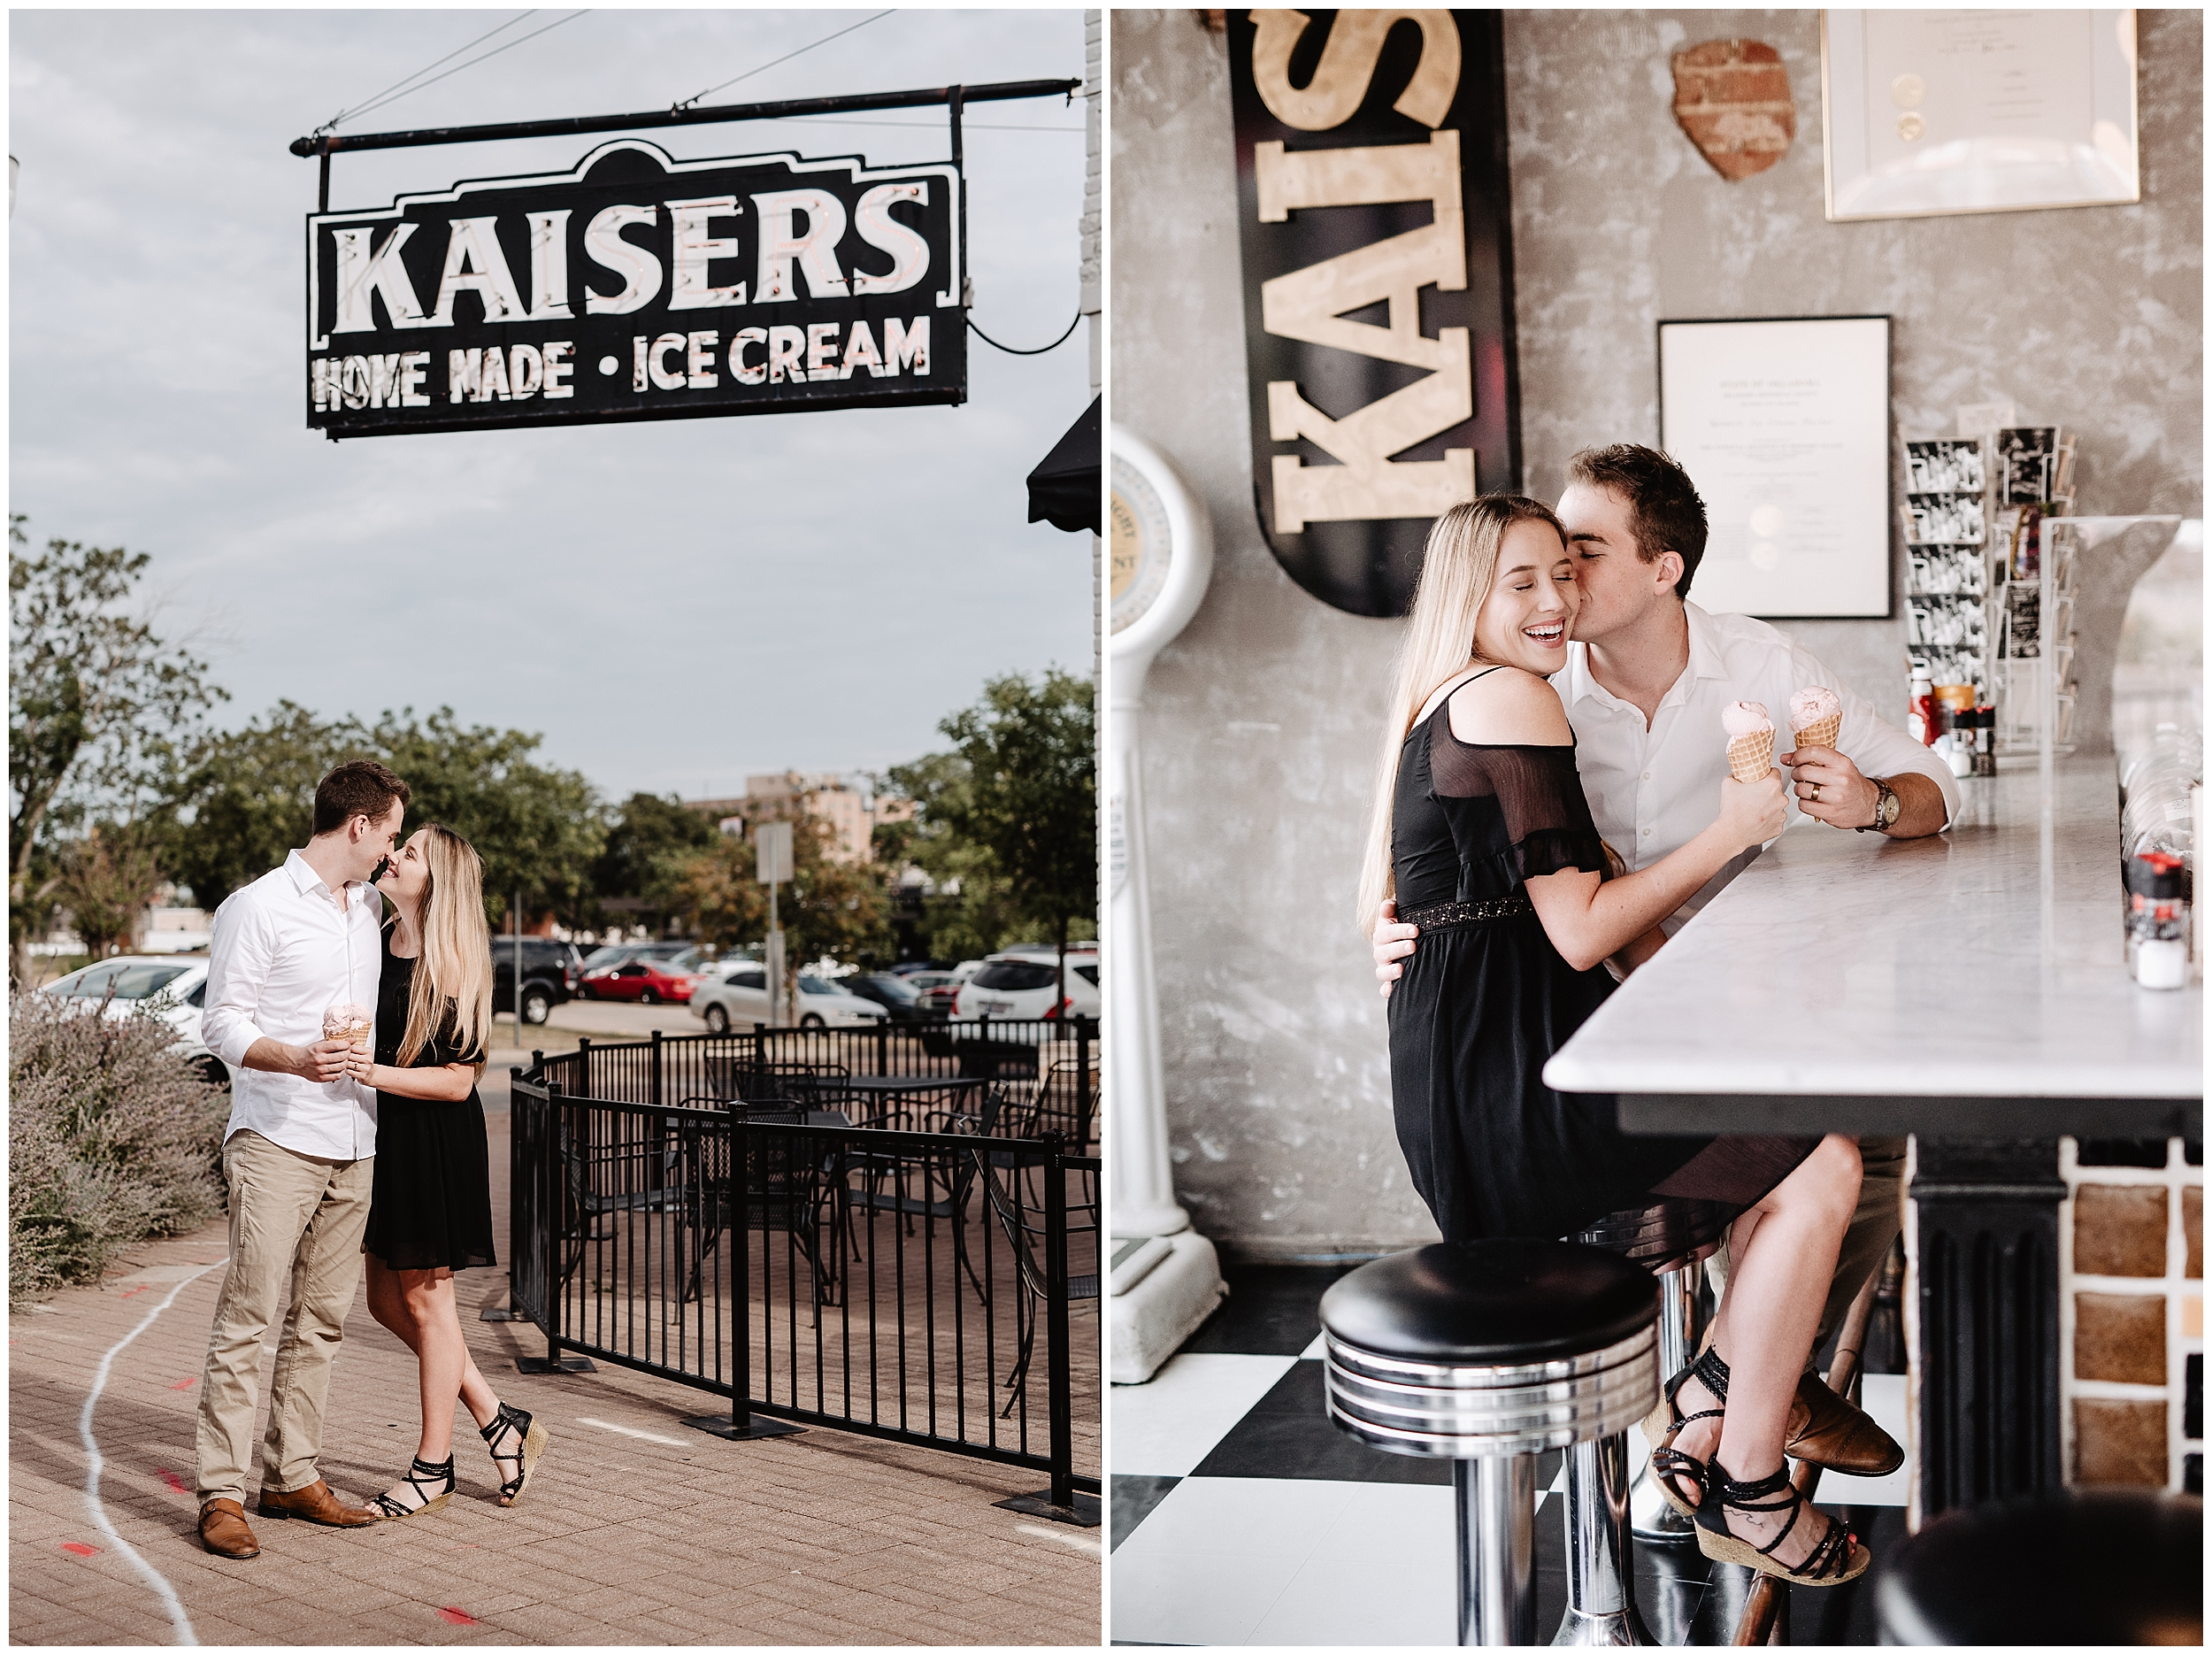 oklahoma wedding photographer date night engagement ice cream kaisers halls pizza kitchen fun shoot midtown okc  casual